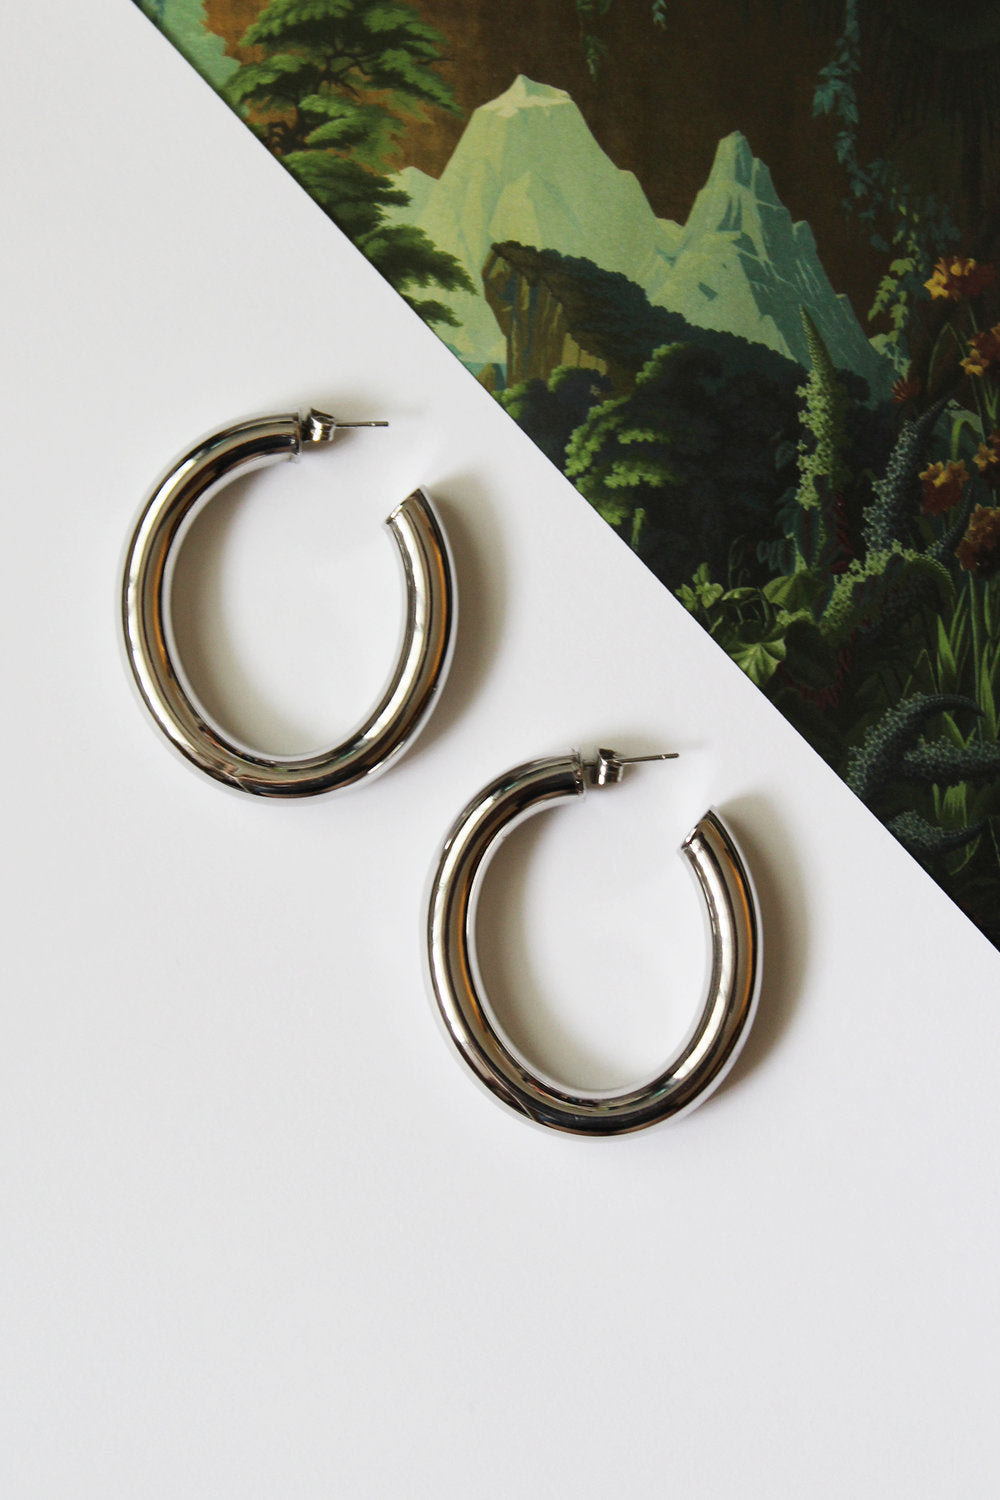 LIMITED EDITION Silver Oval Tube Earrings